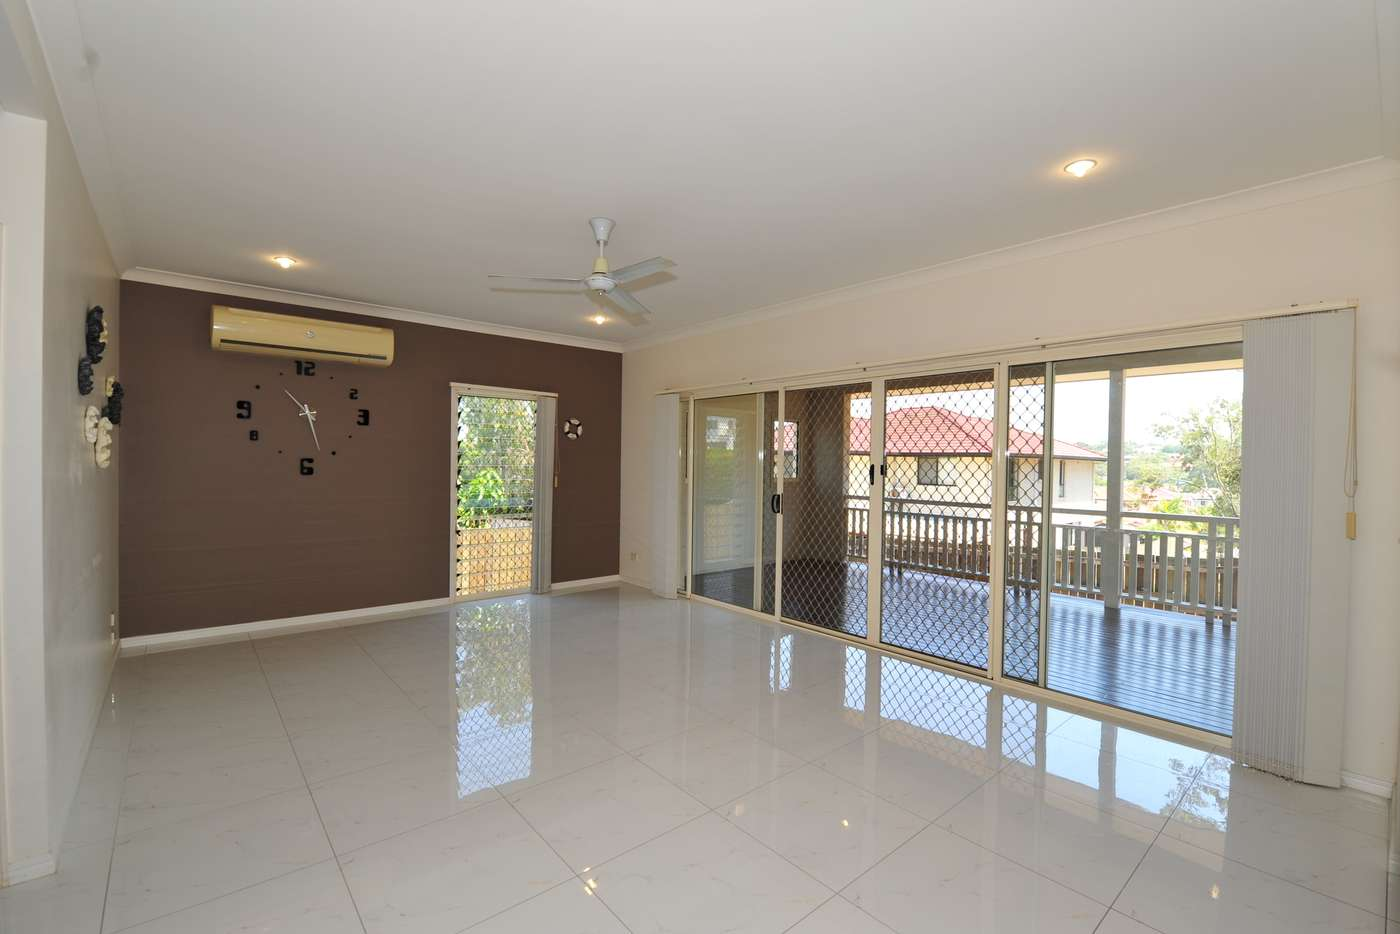 Sixth view of Homely house listing, 18 Sakarben Street, Eight Mile Plains QLD 4113